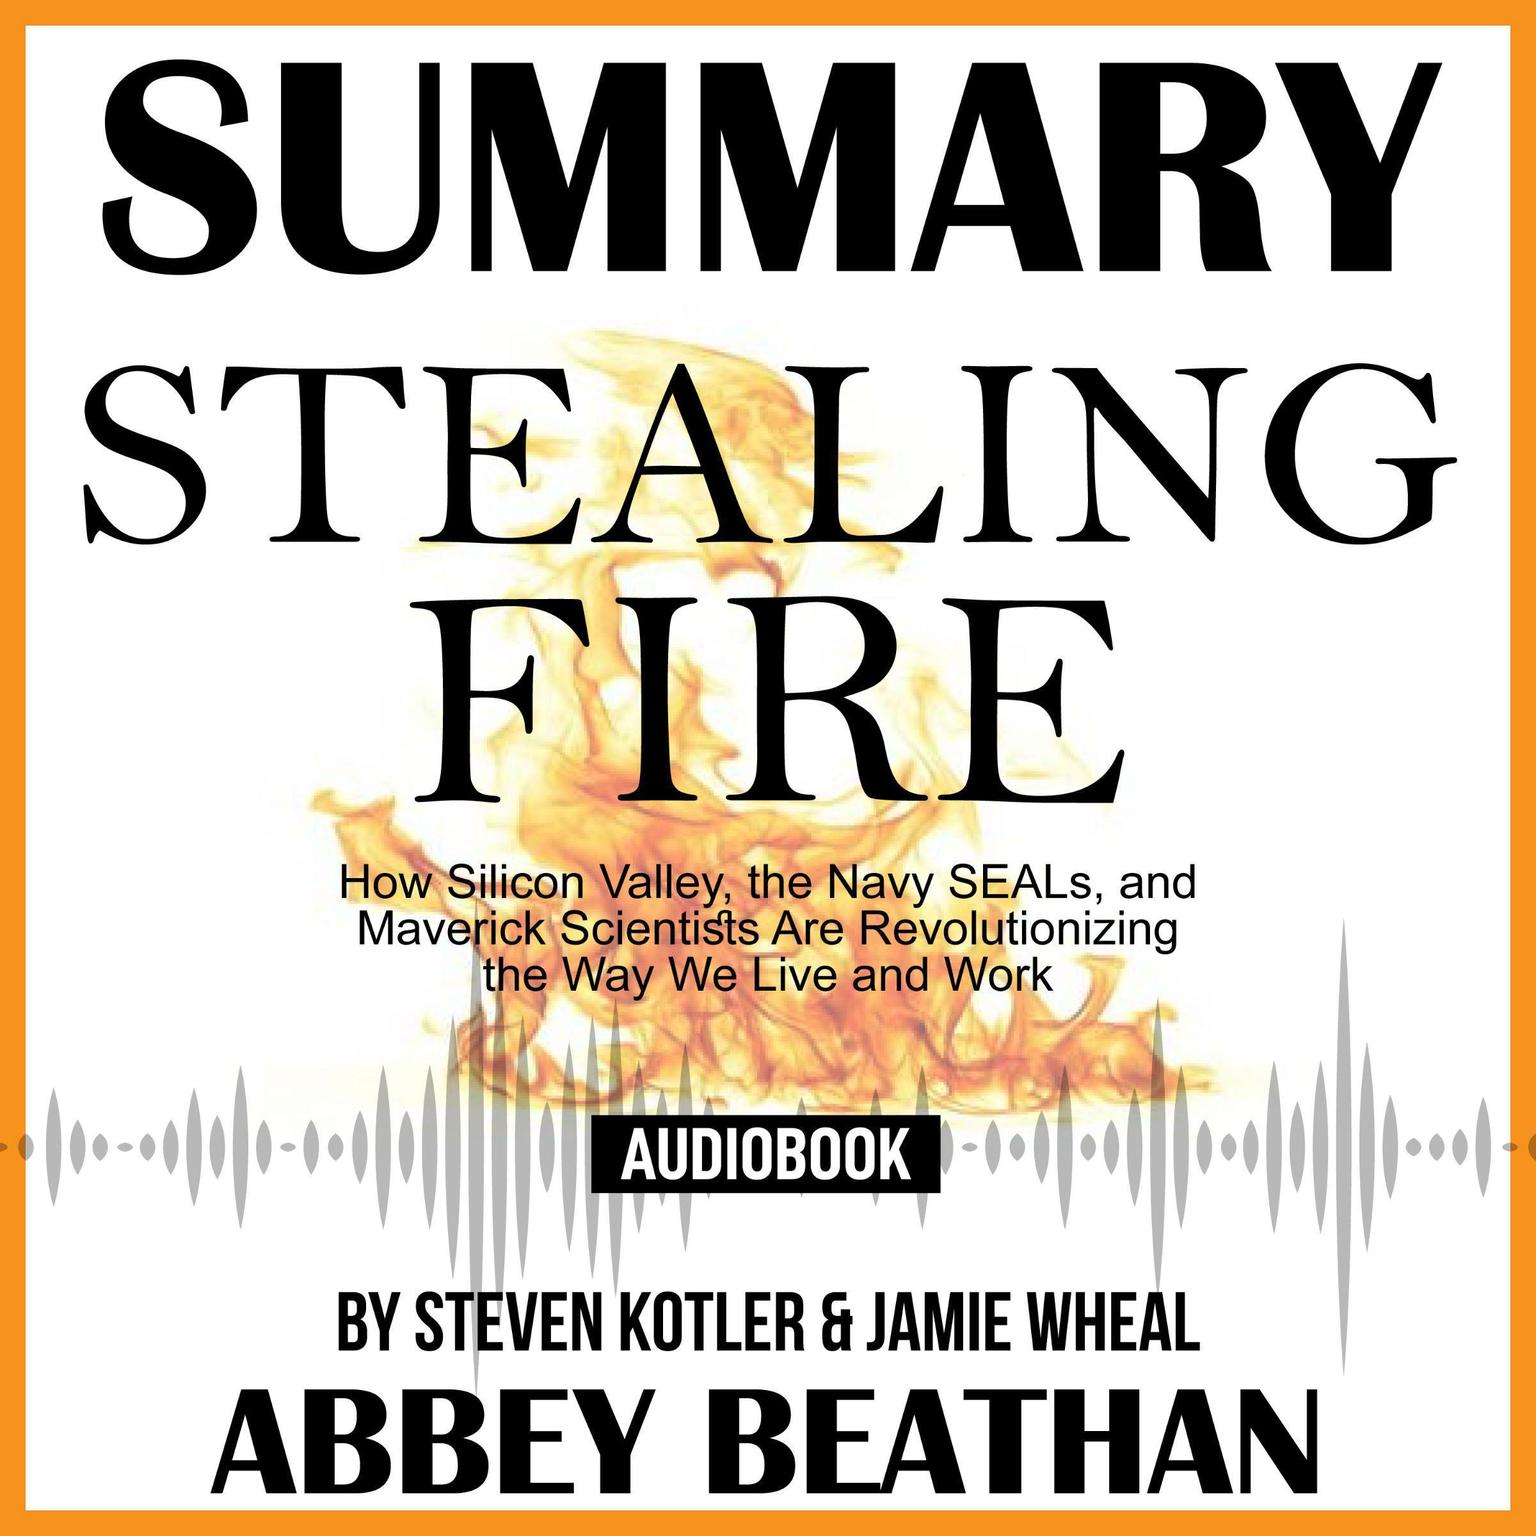 Summary of Stealing Fire: How Silicon Valley, the Navy SEALs, and Maverick Scientists Are Revolutionizing the Way We Live and Work by Steven Kotler & Jamie Wheal Audiobook, by Abbey Beathan